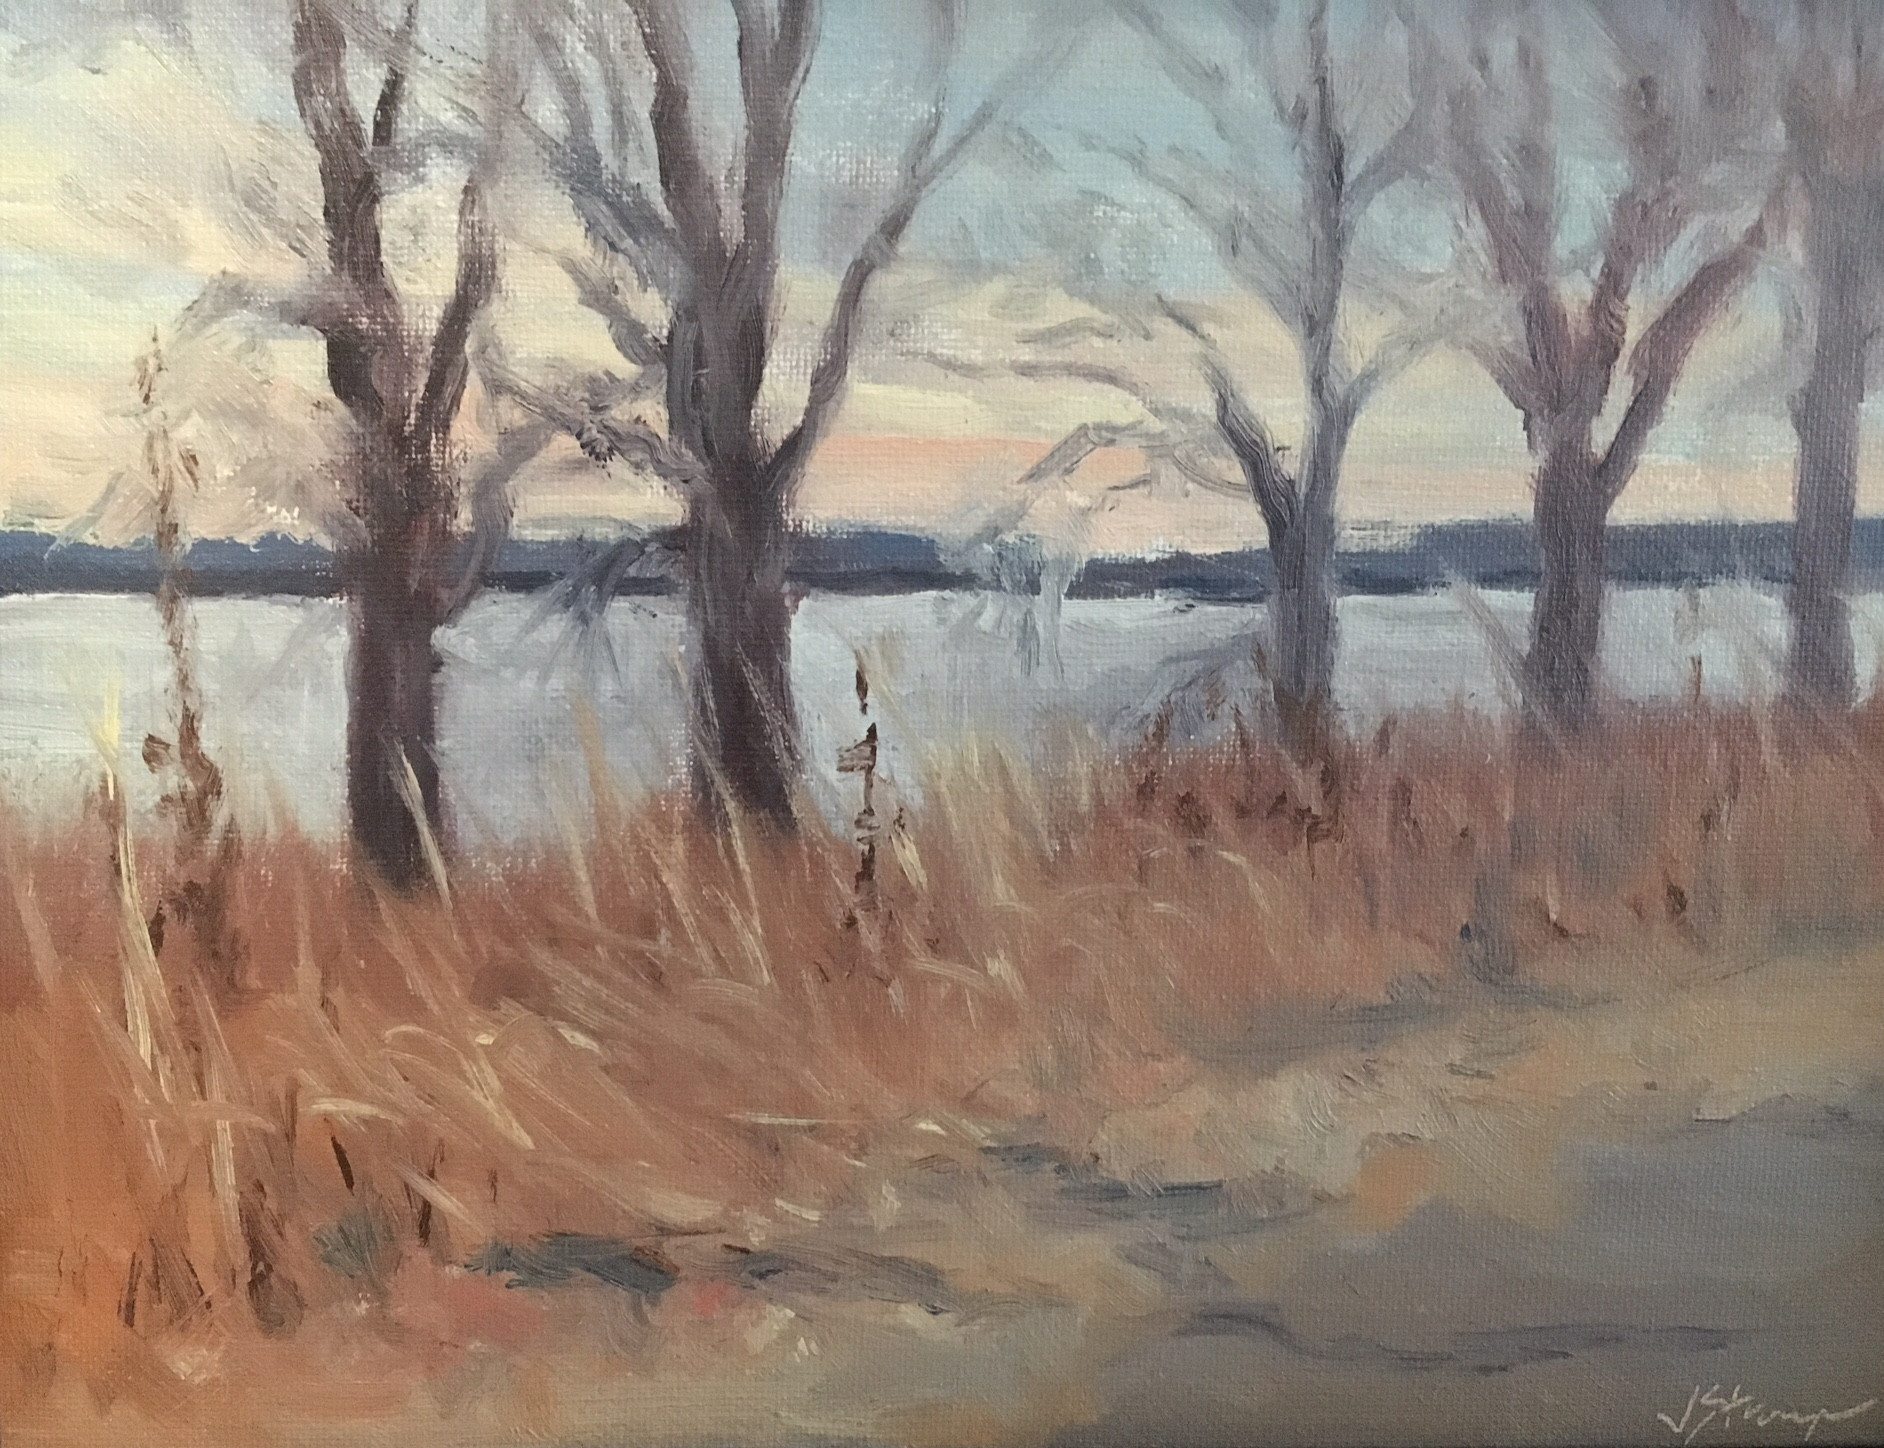 Riverlands in Winter, Judy Stroup